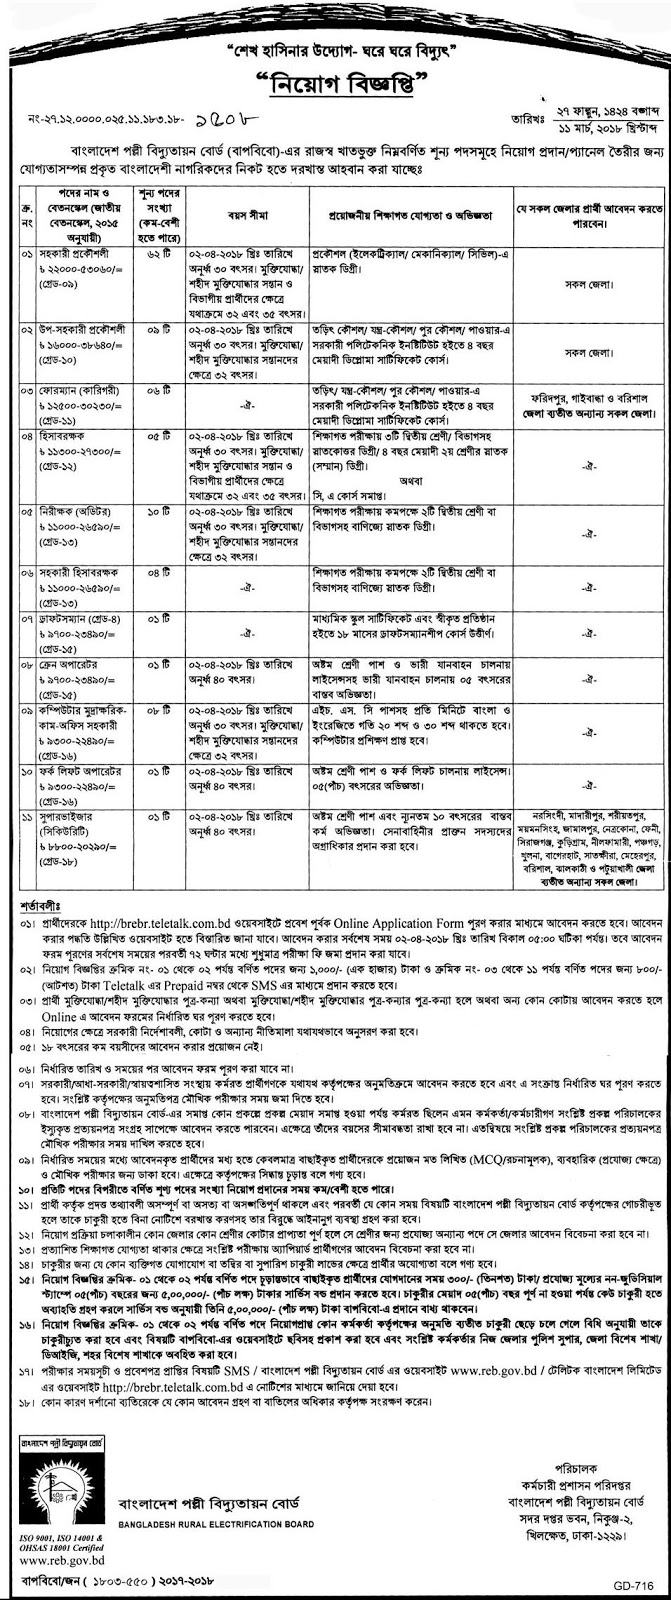 Bangladesh Rural Electrification Board (BREB) Recruitment Circular 2018